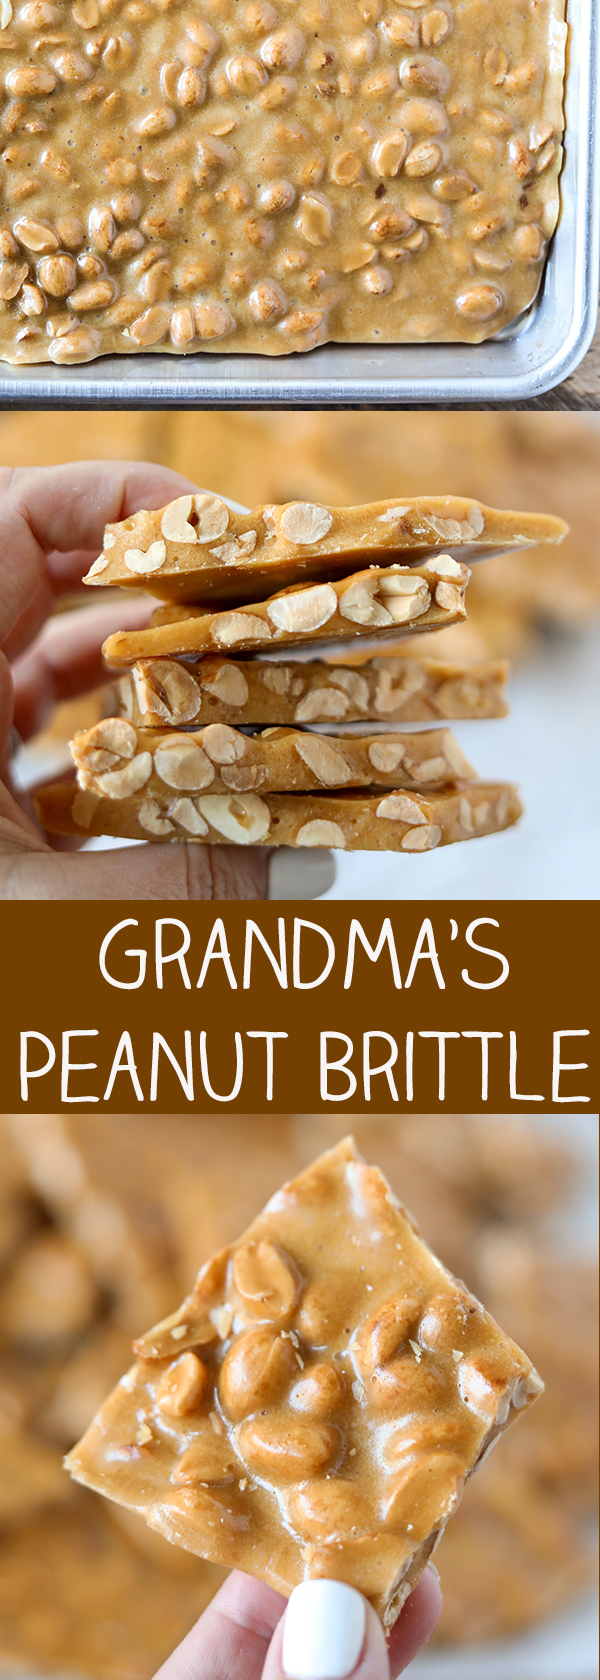 Grandma's Peanut Brittle Recipe